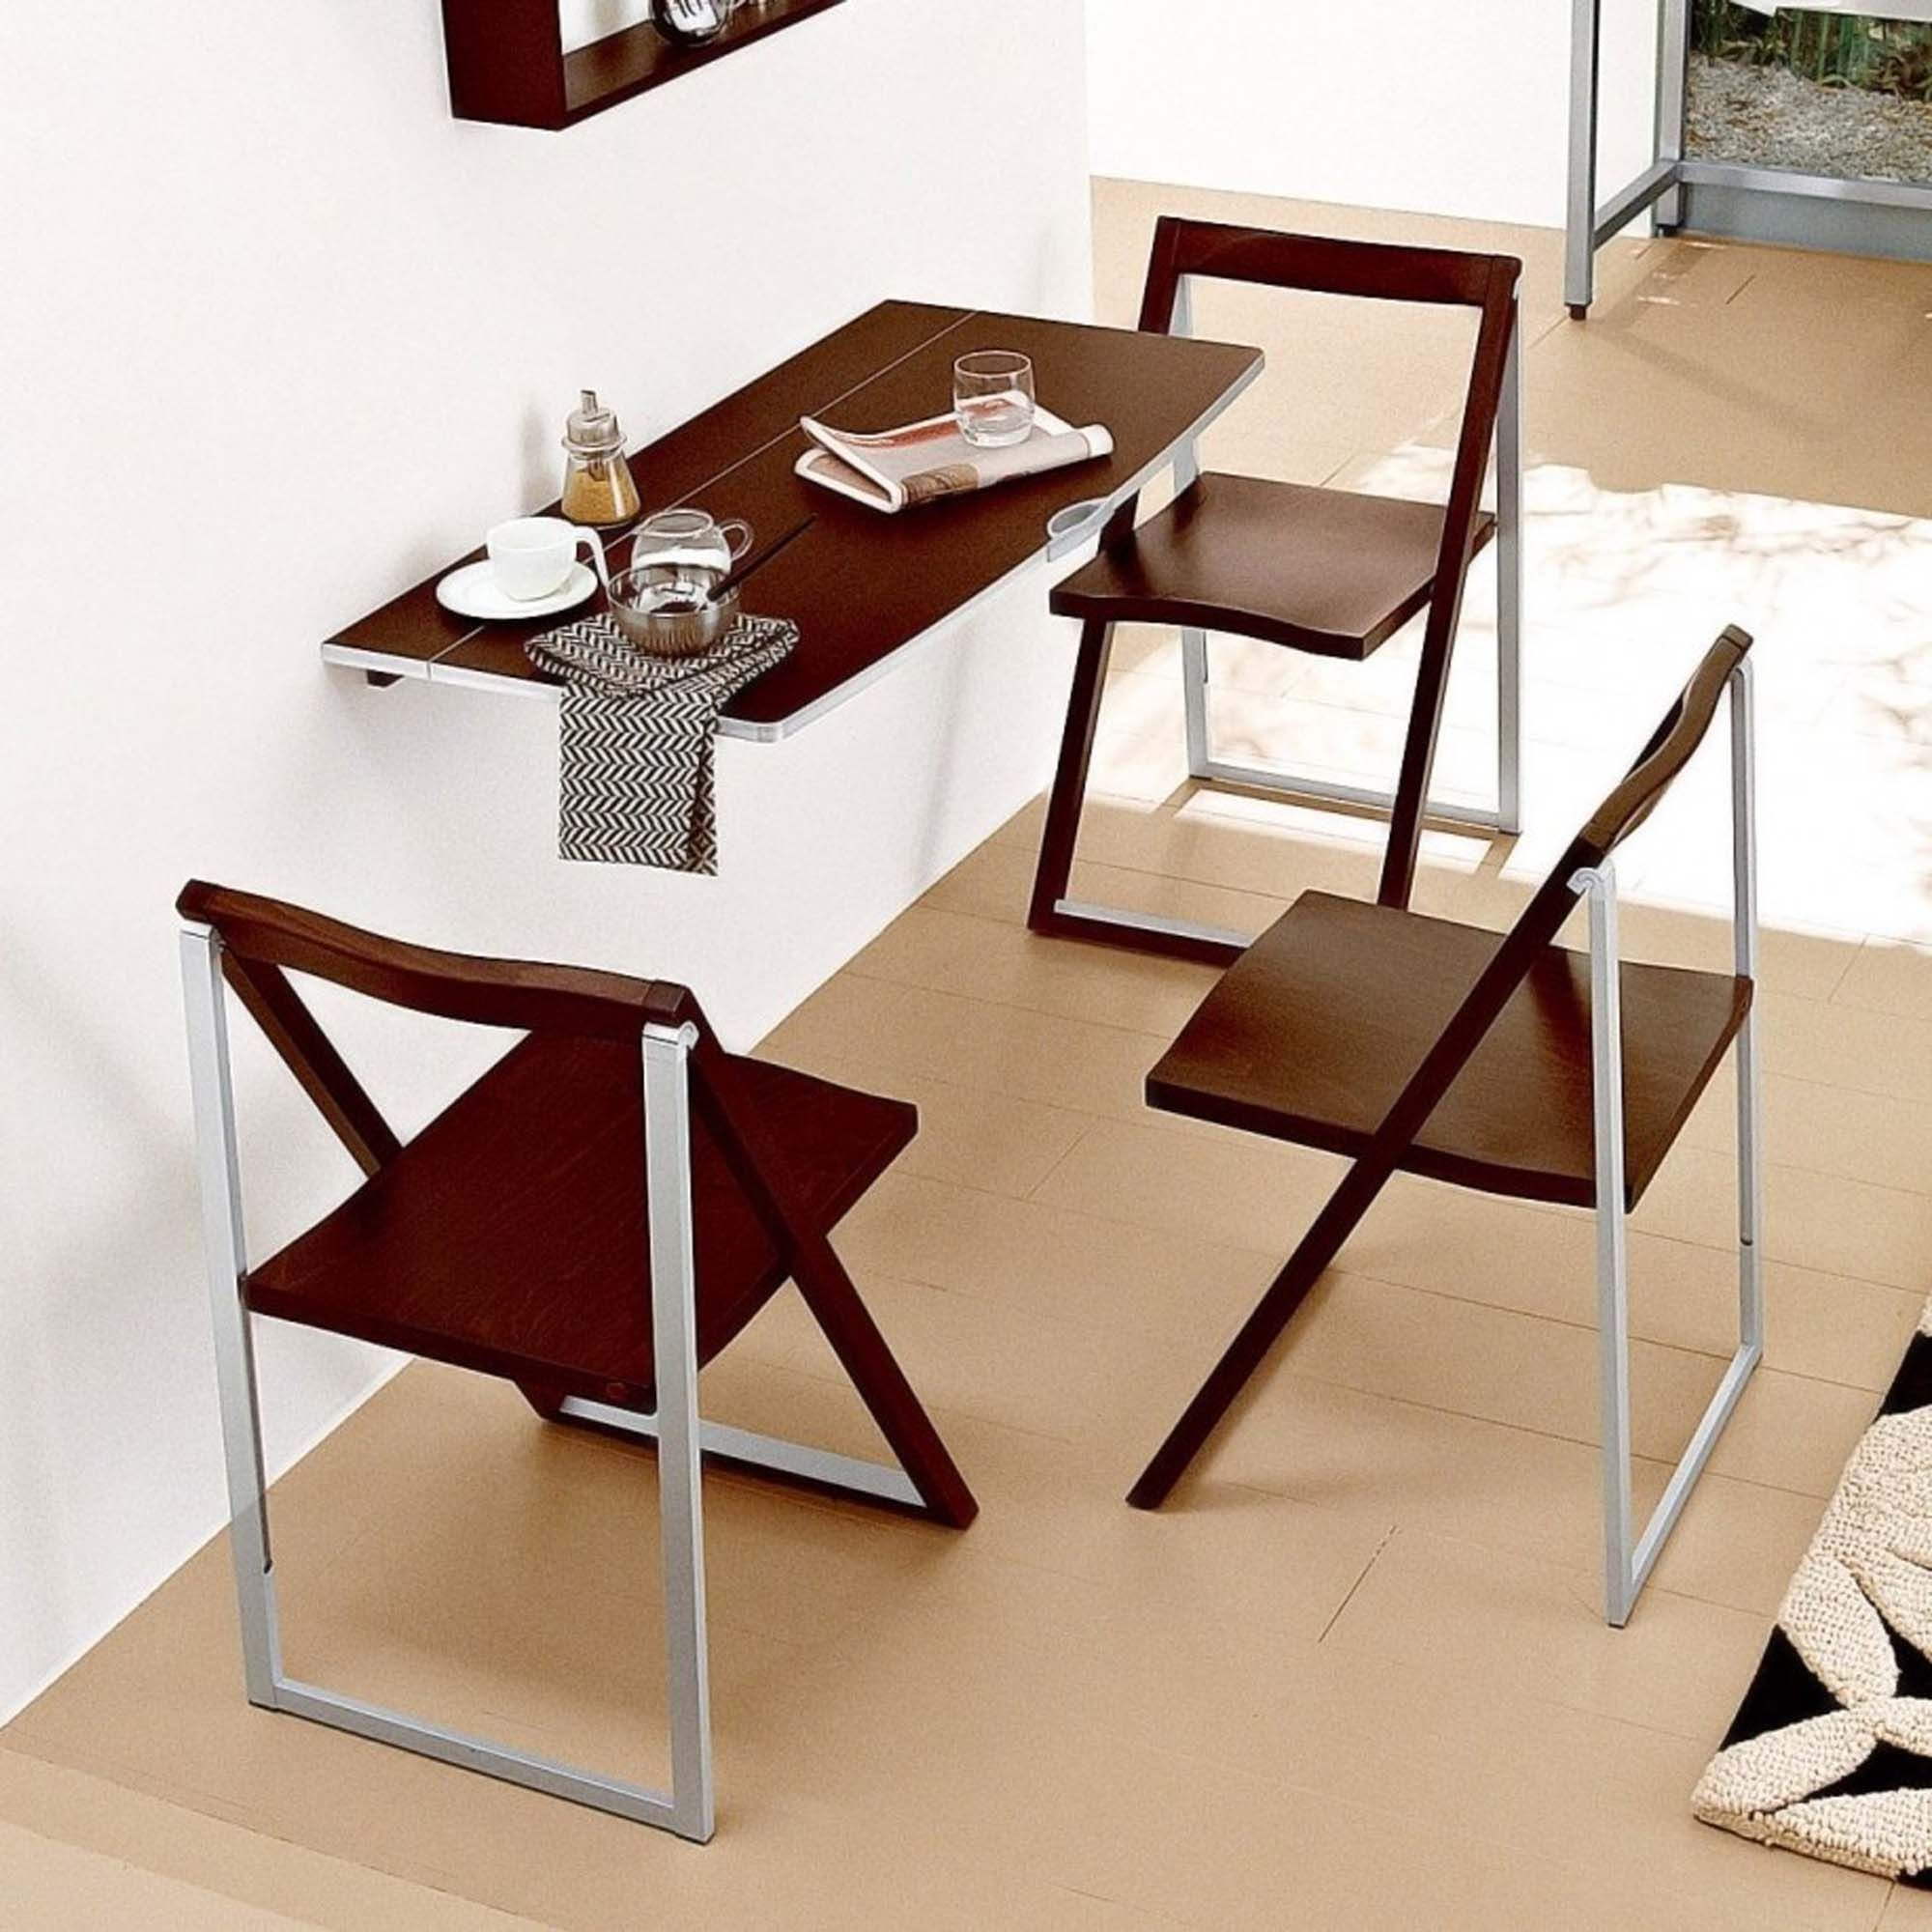 Furniture Small Modern Dining Room Spaces With Wood Wall Mounted